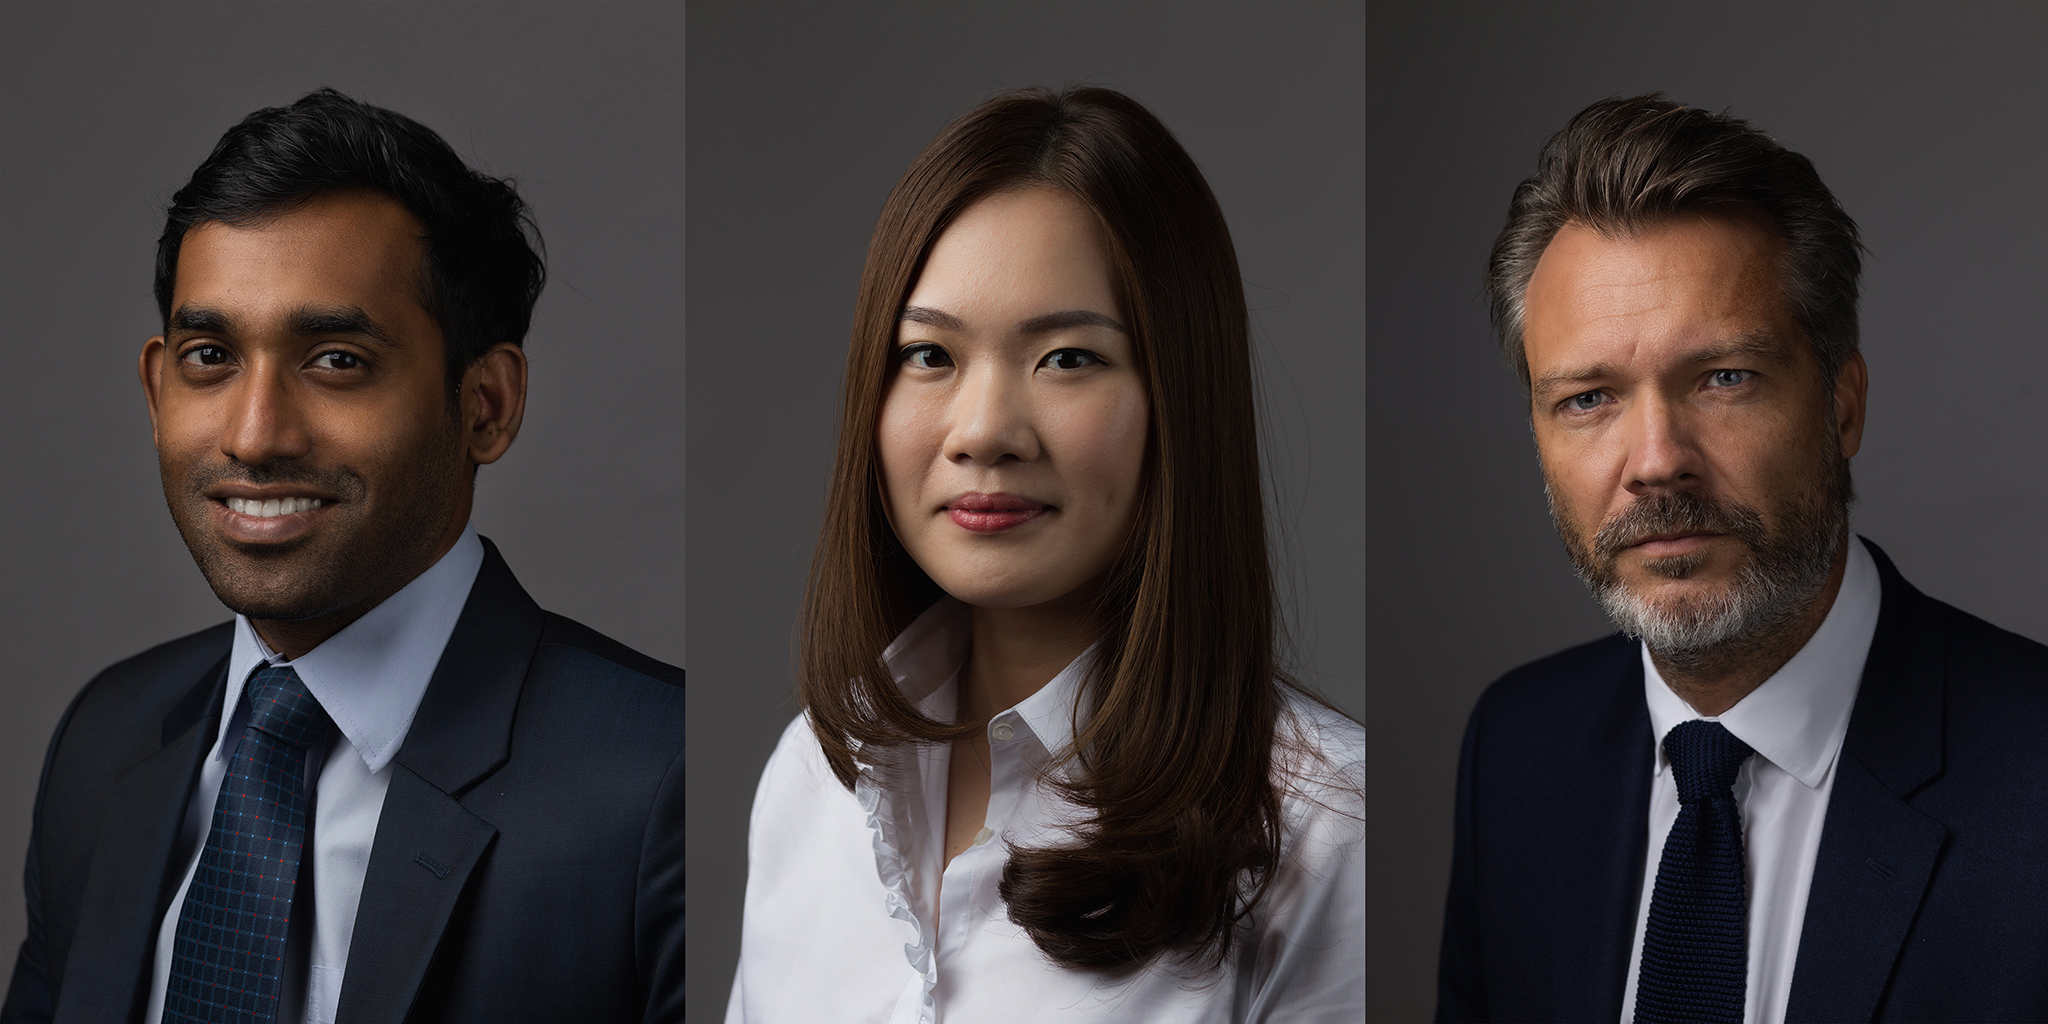 Corporate Portraits for Moody's Investors Service Singapore.